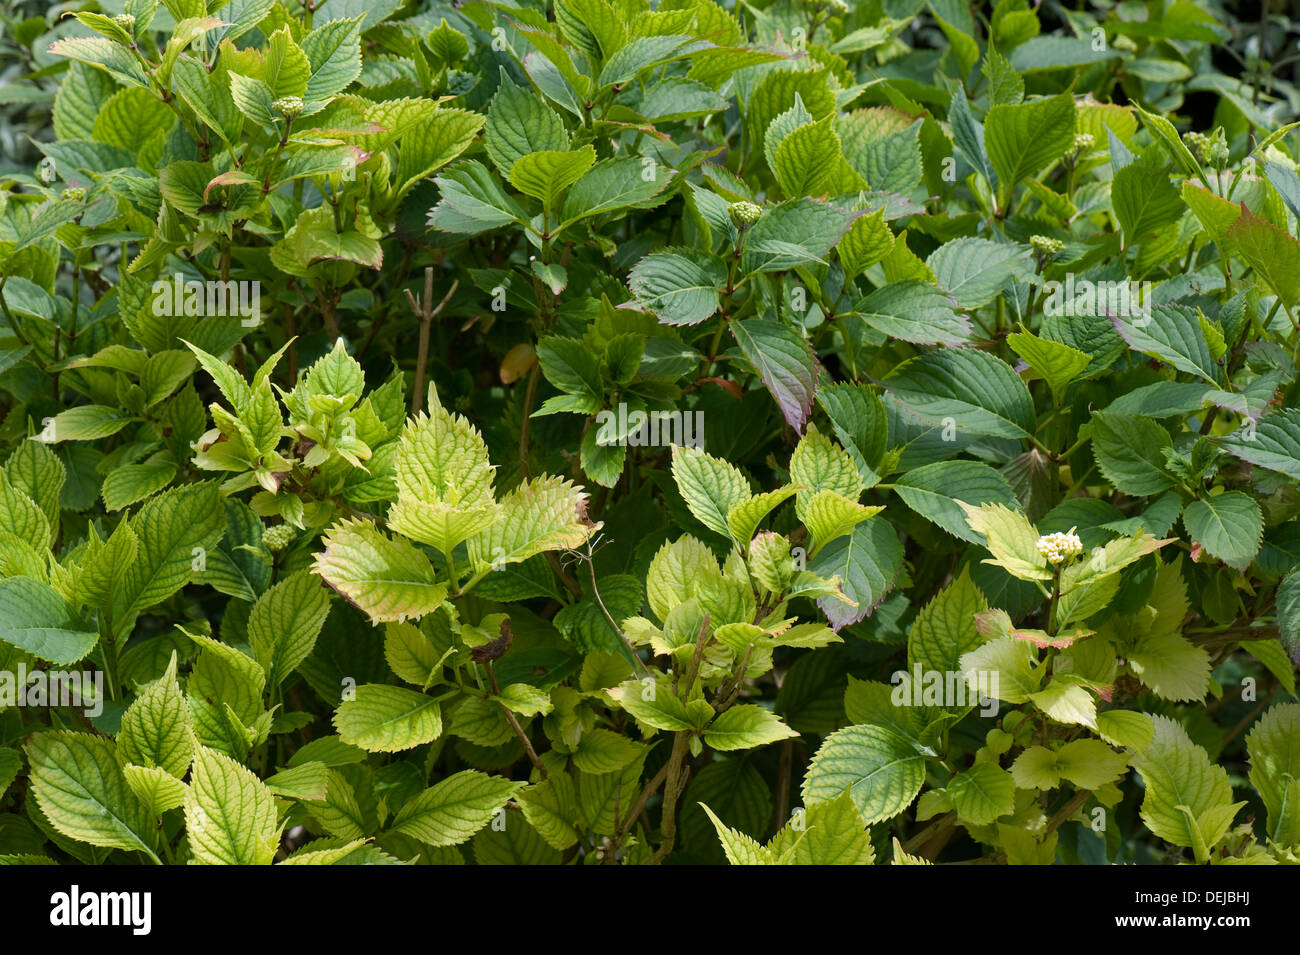 Lime induced iron and nitrogen deficiency causing chlorosis of the leaves of a Hydrangea macrophylla garden shrub - Stock Image